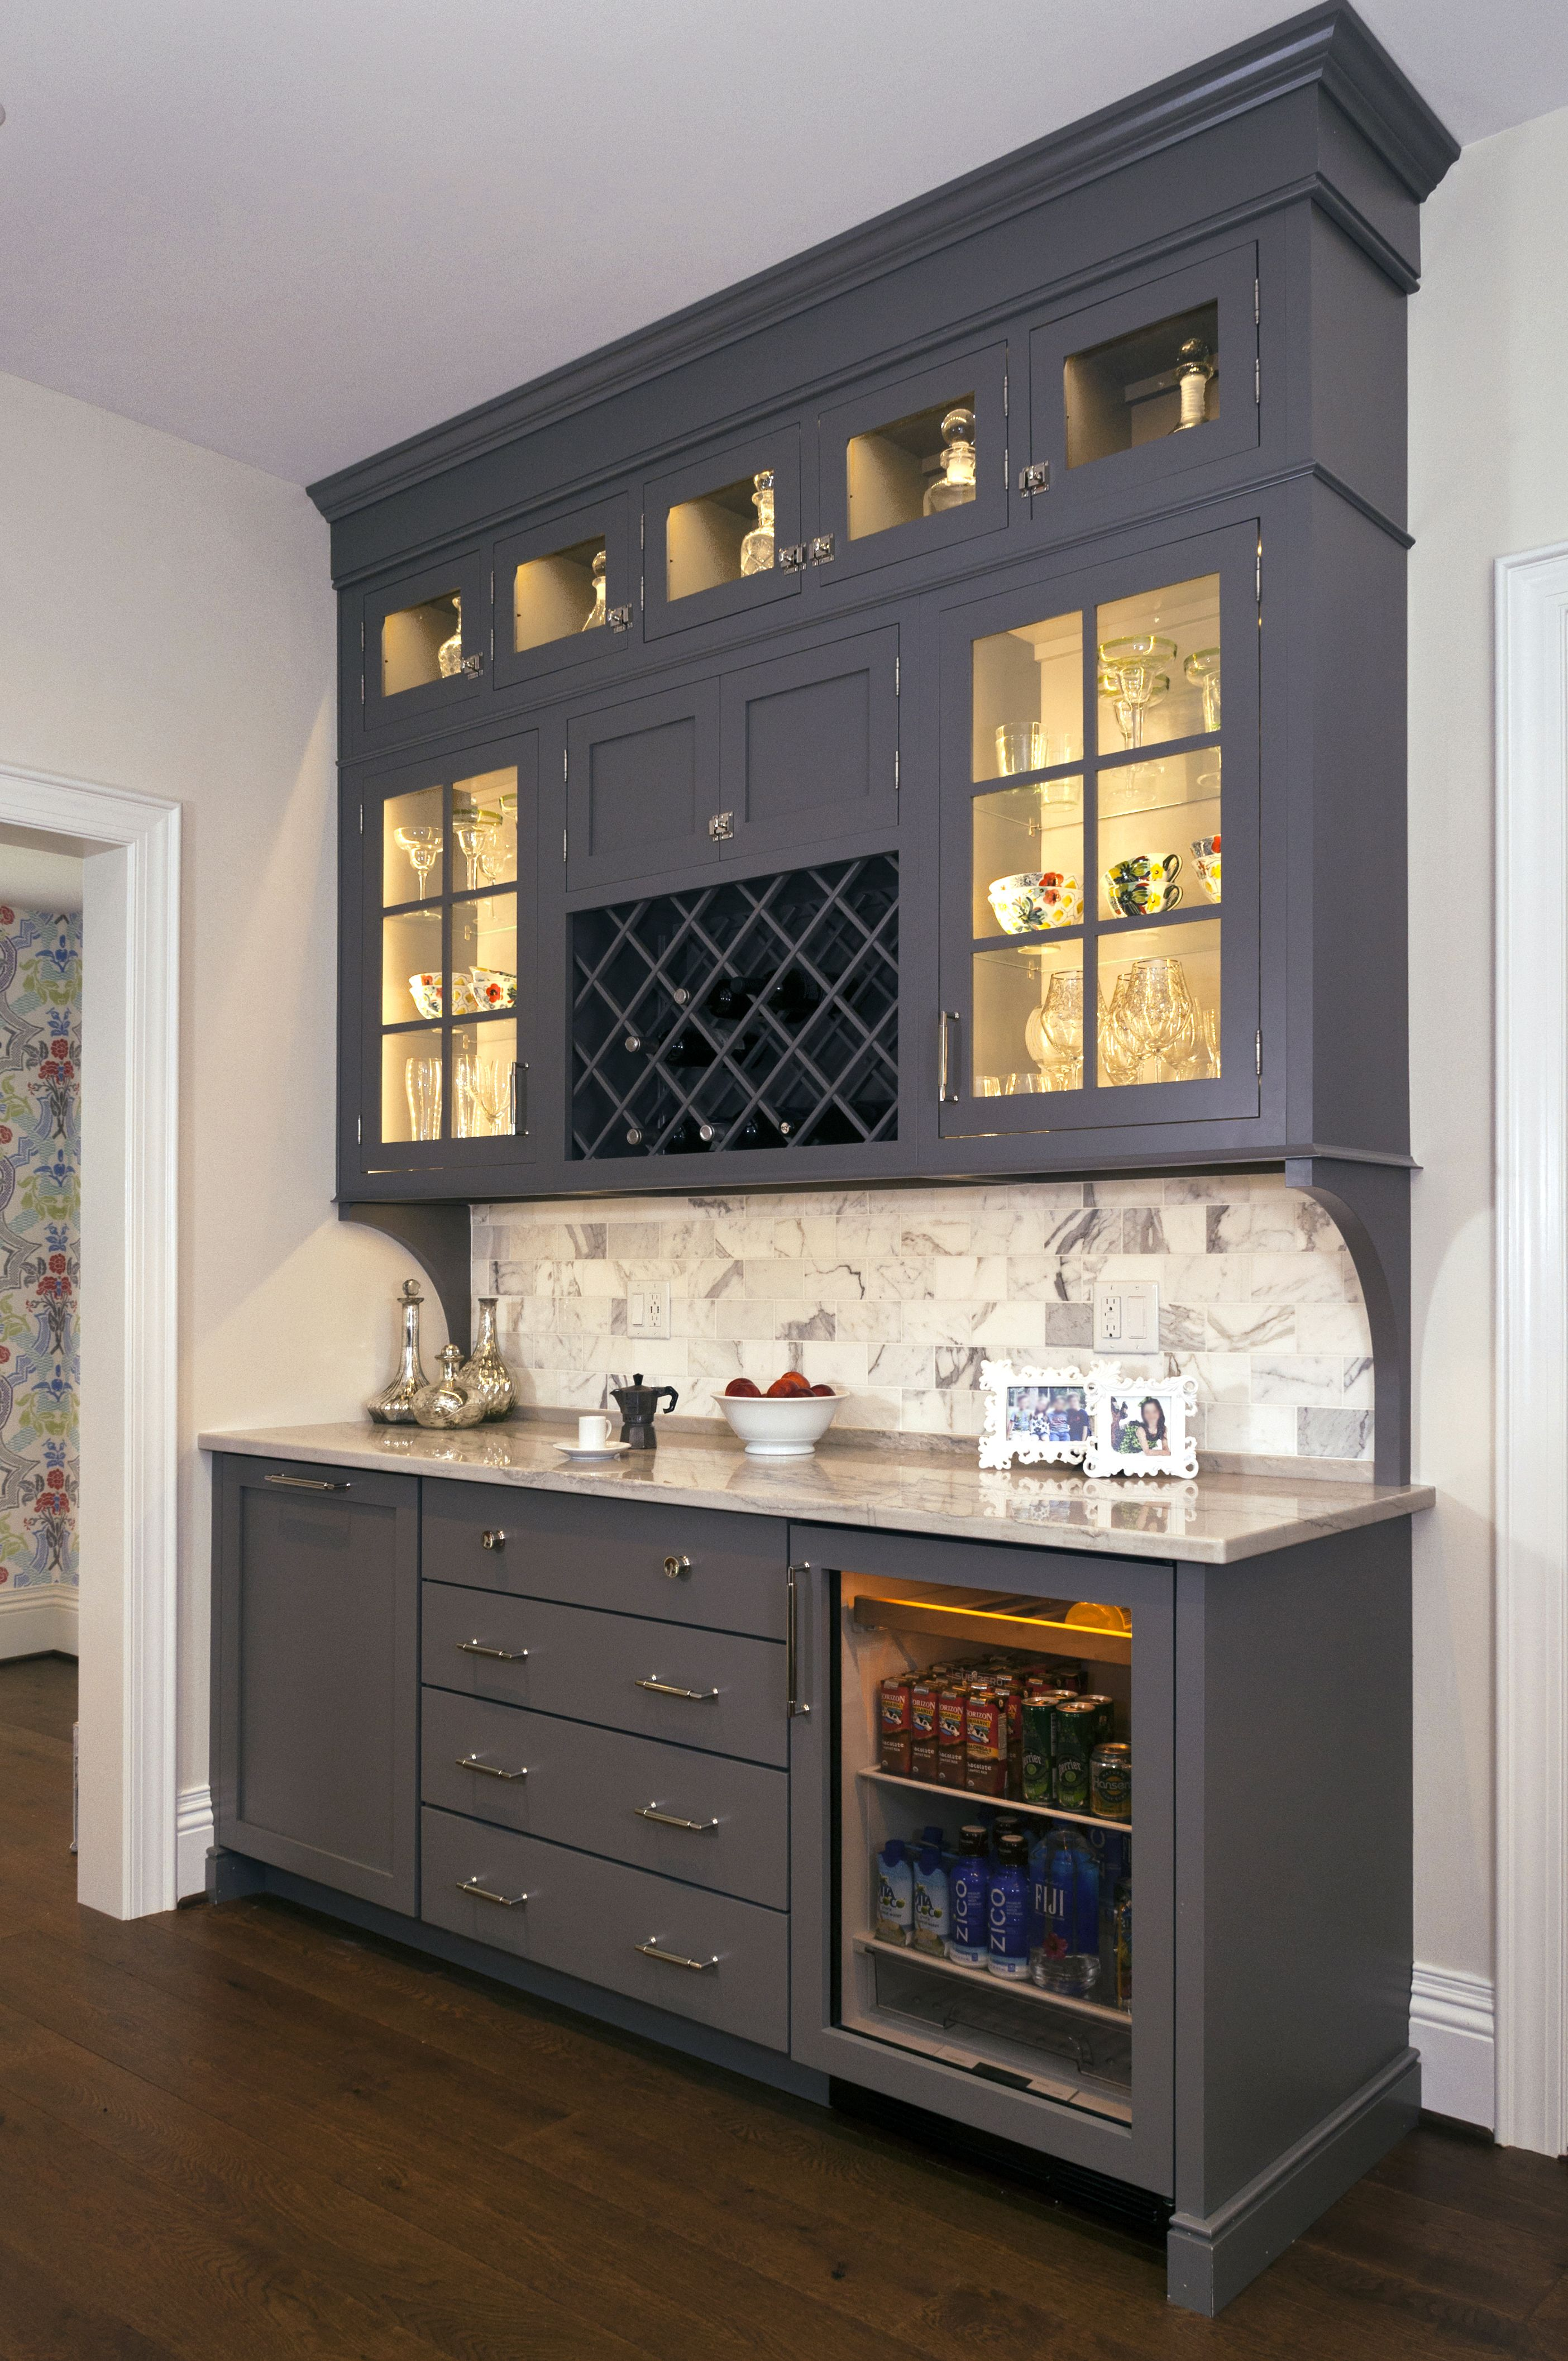 Concealed Behind This Elegant Storage Unit Is Everything You Need To Host The Perfect Party It Houses From Liquor Different Types Of Glass